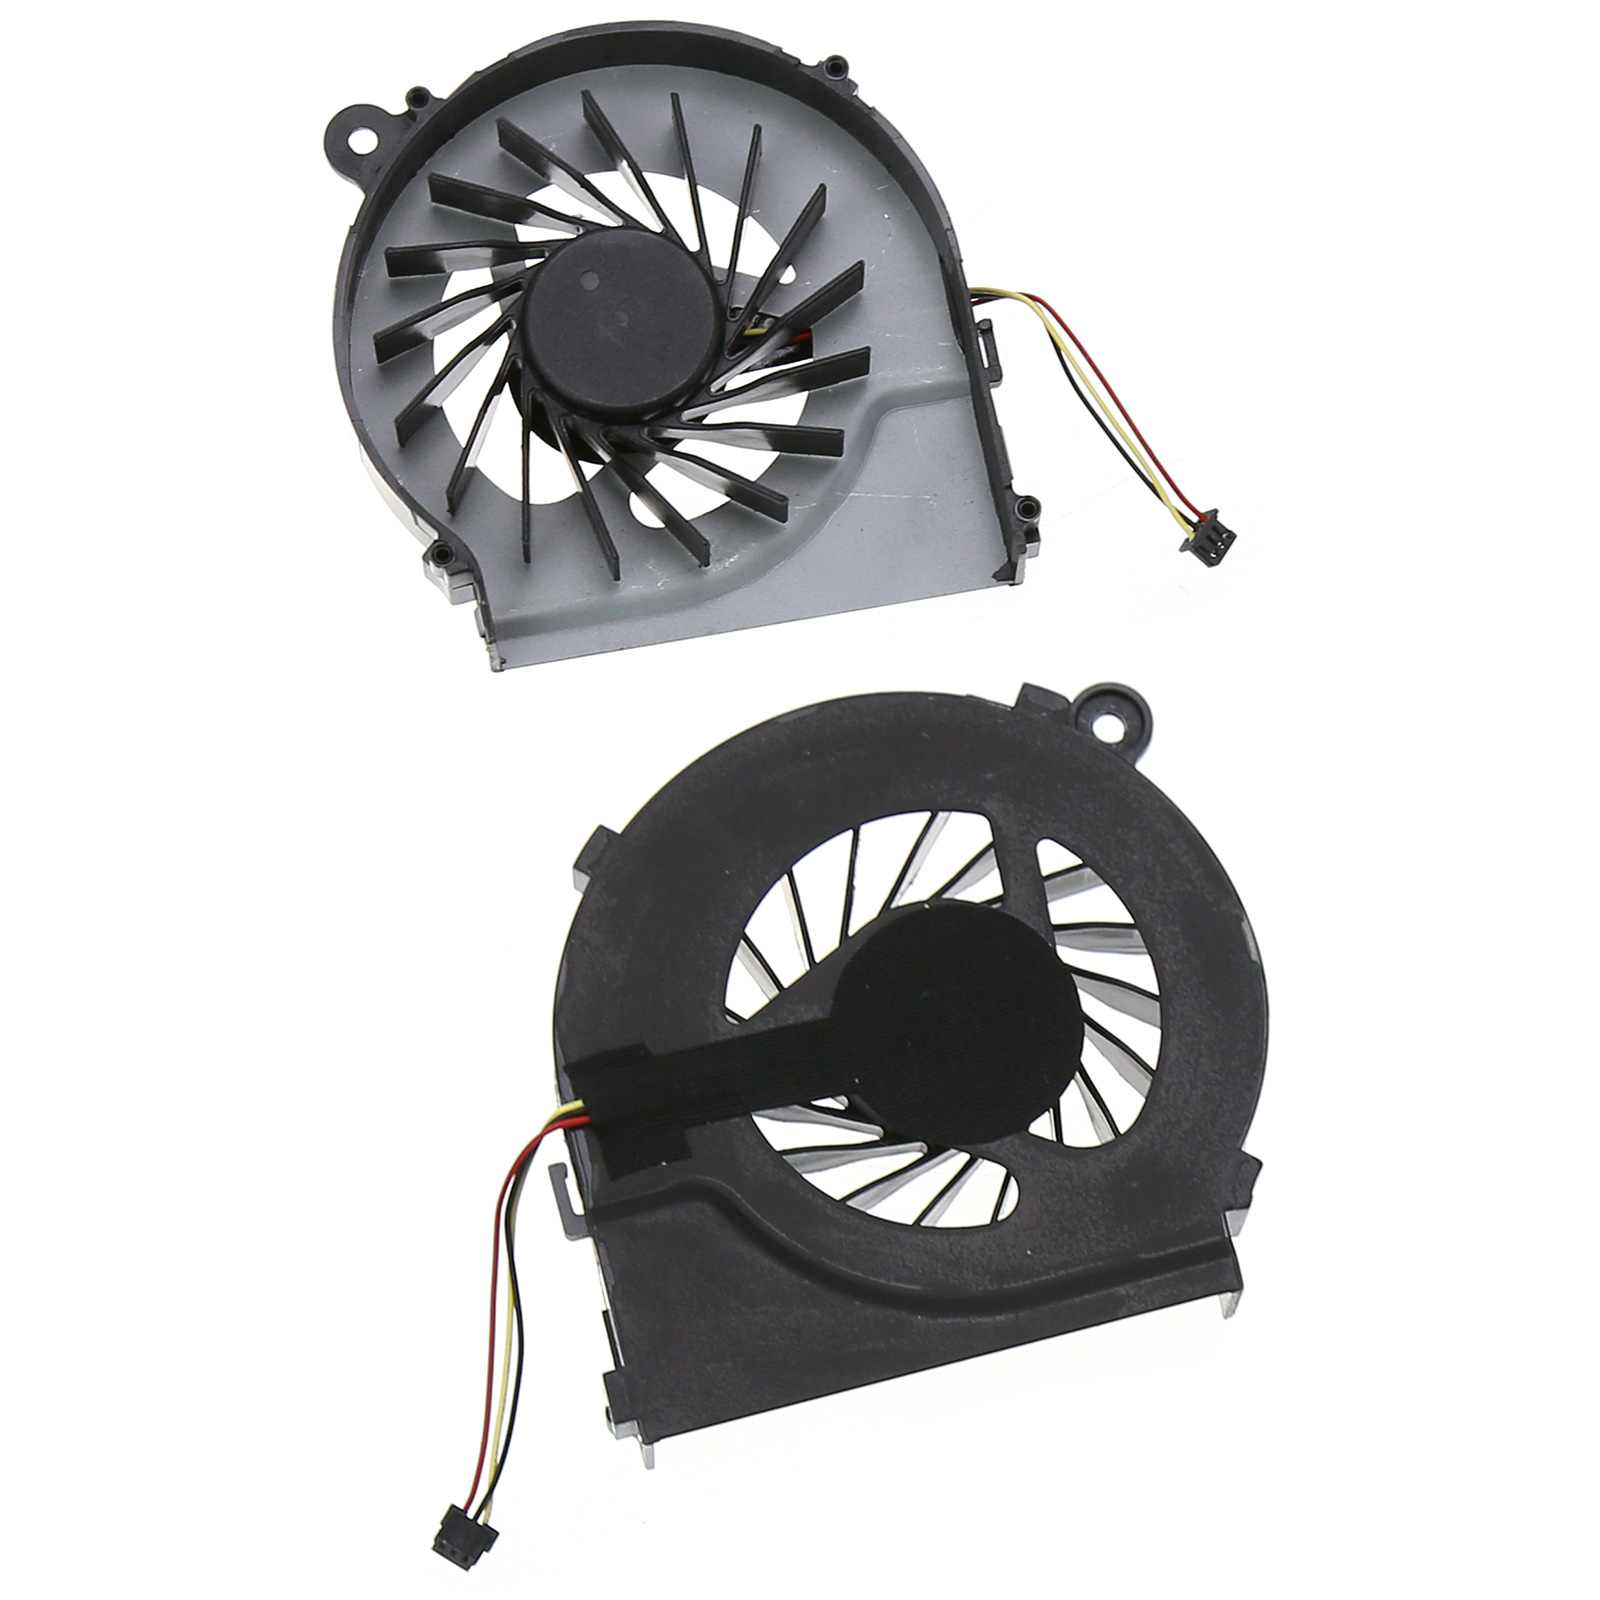 2017 Laptop CPU Cooler Cooling Fan PC cooling fan for G4-2000 G7 g7-2000 G6 G6-2000 G7-2240US FAR3300EPA KIPO 683193-001 bottom shell for hp pavilion 17 3 inches g7 2000 g7 2022us g7 2118nr g7 2226nr laptop bottom case cover 685072 001 708037 001